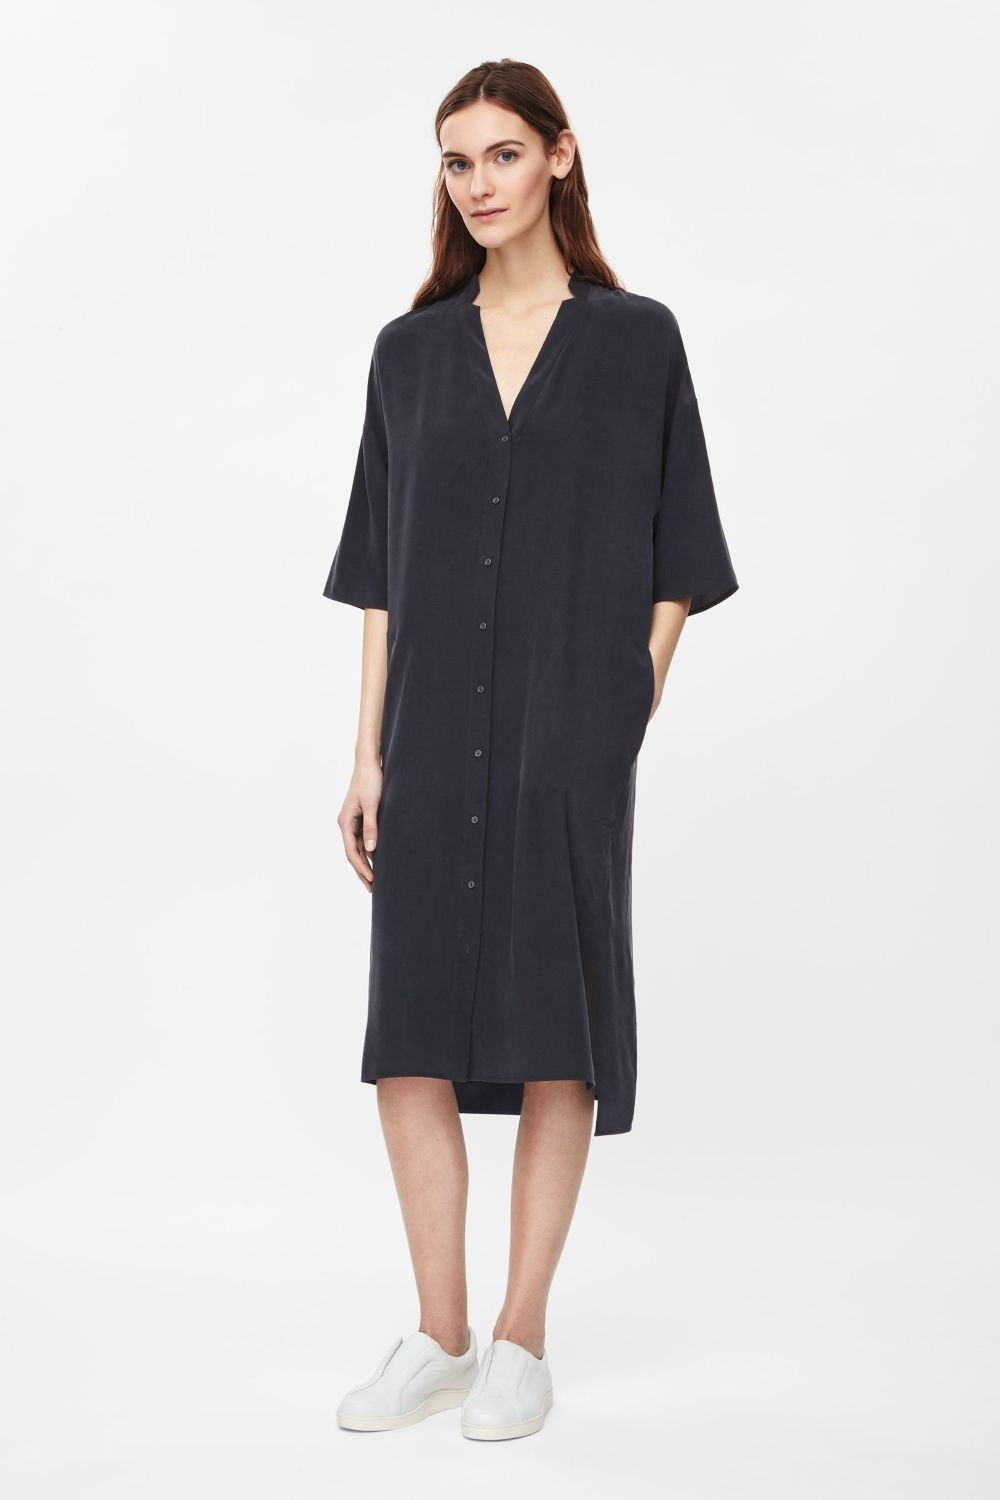 This long vneck shirt dress is made from pure silk with a soft